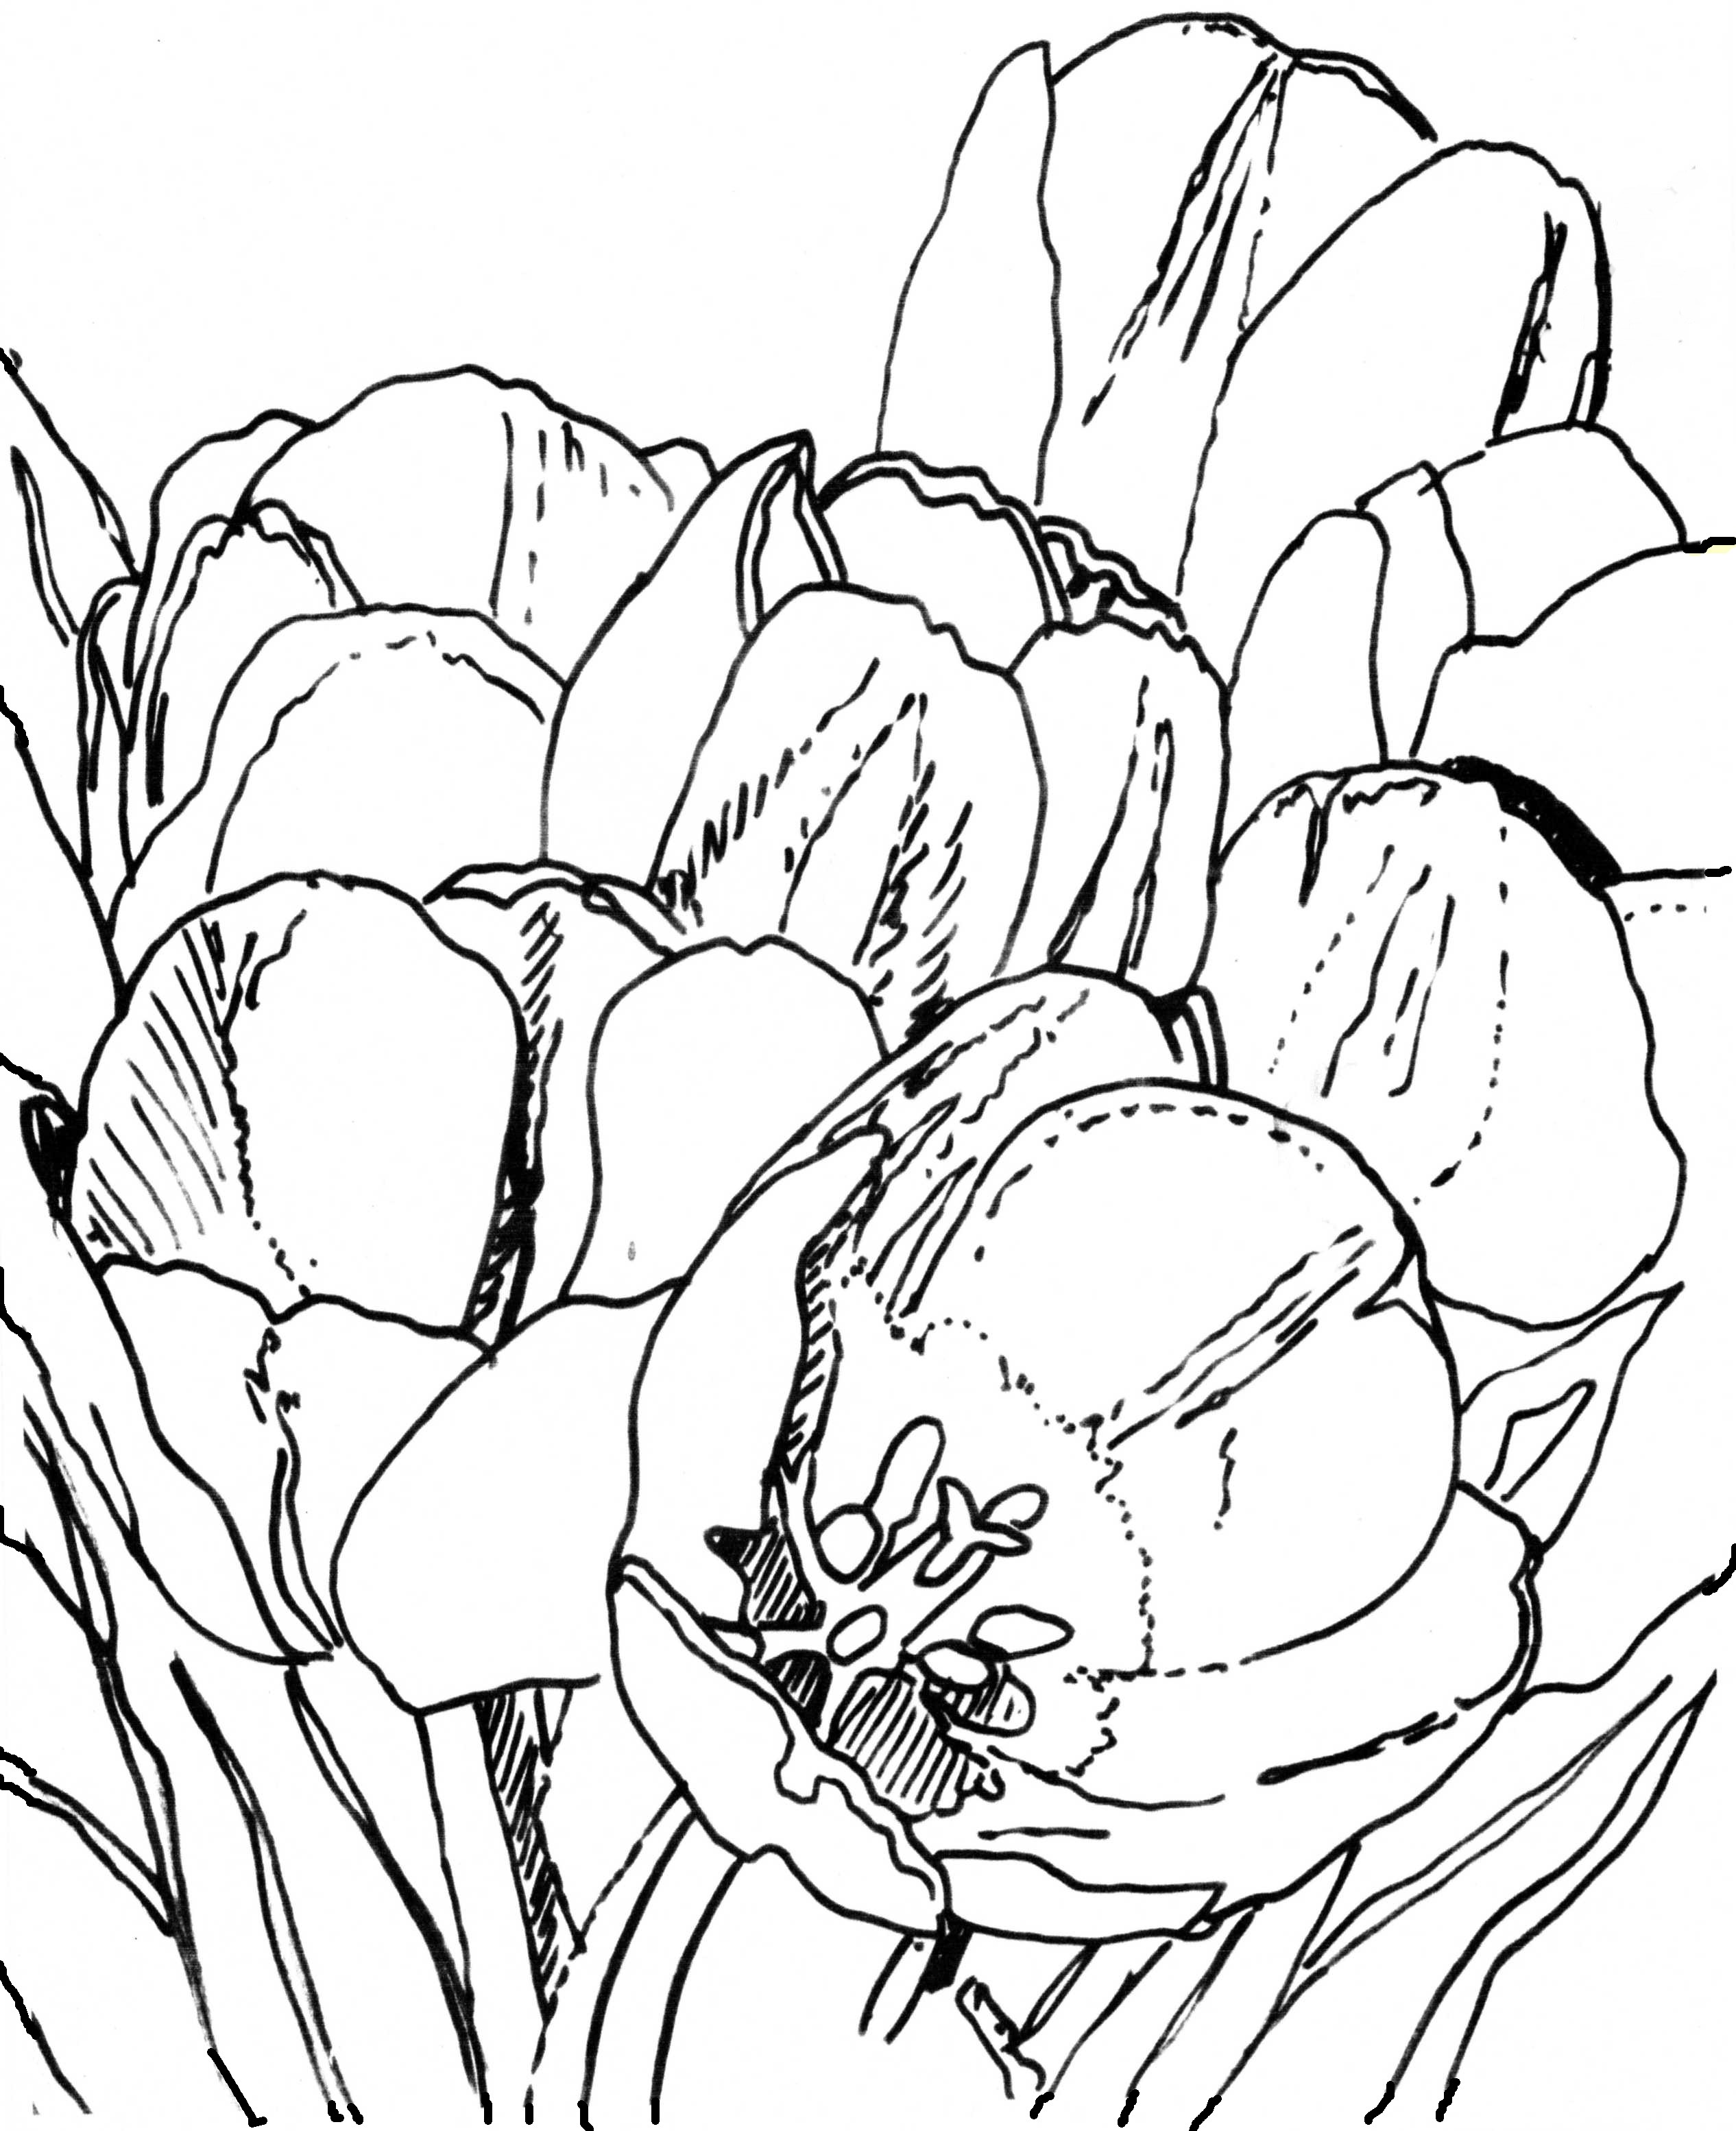 drawings of tulips tulip line drawing clipart best tulips of drawings